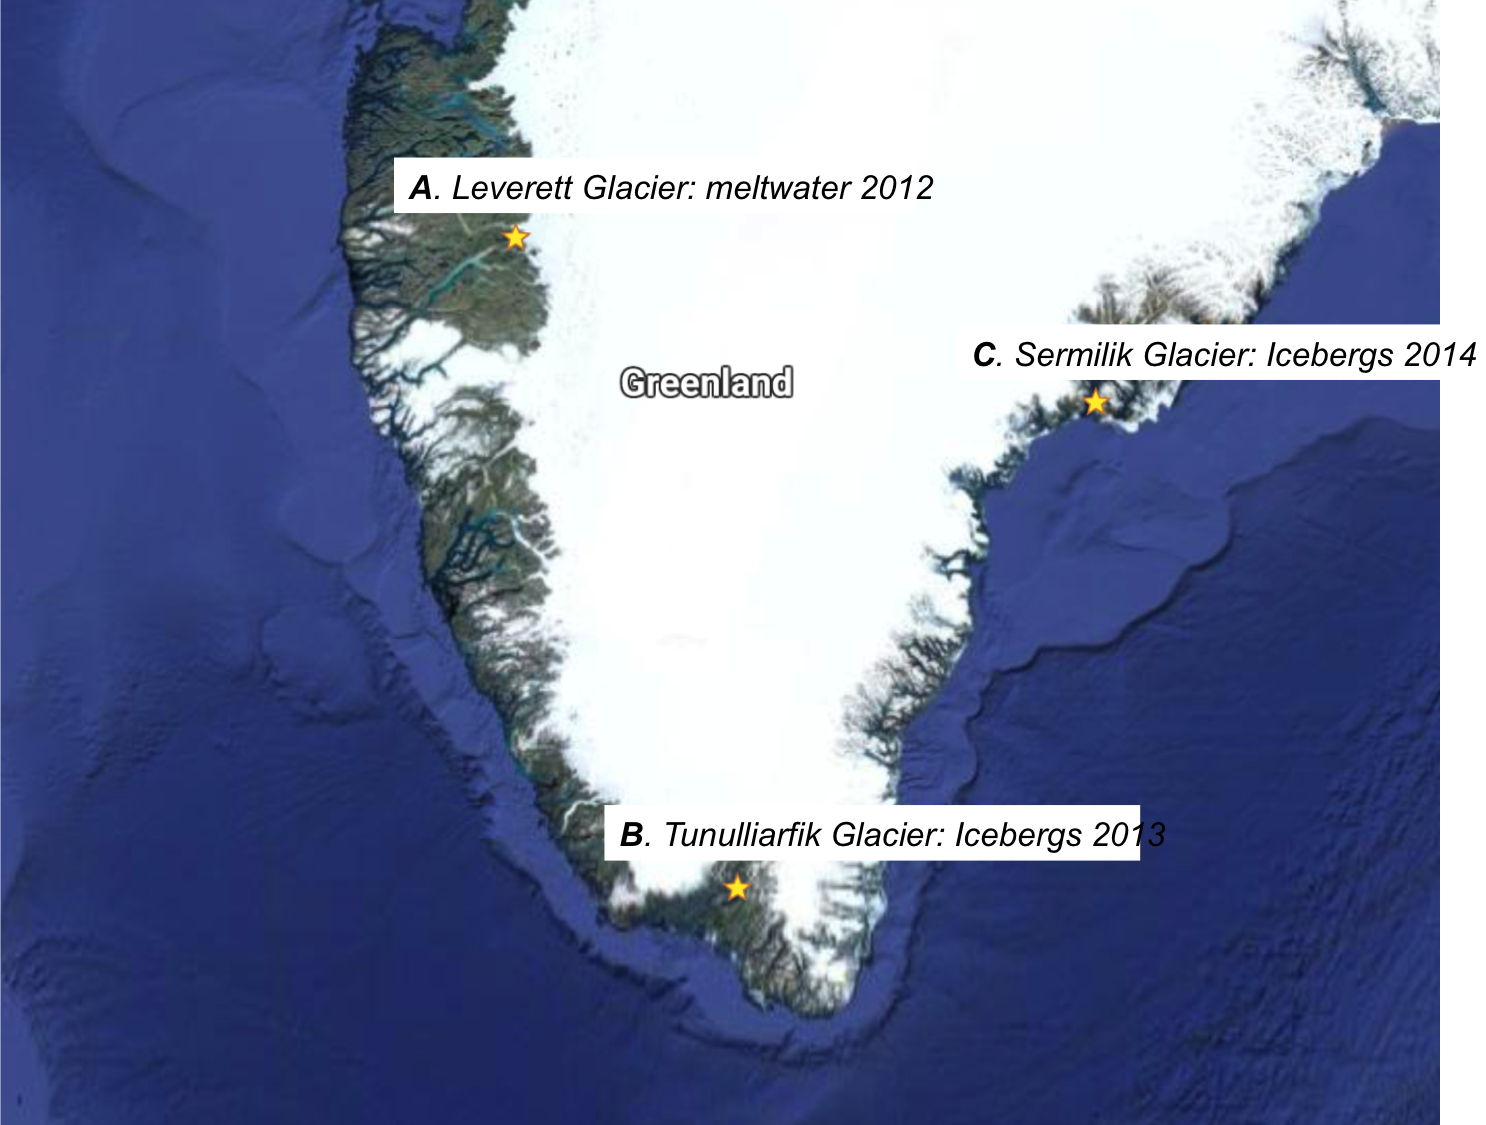 Figure 1: Greenland Ice Sheet; image modified from Google maps